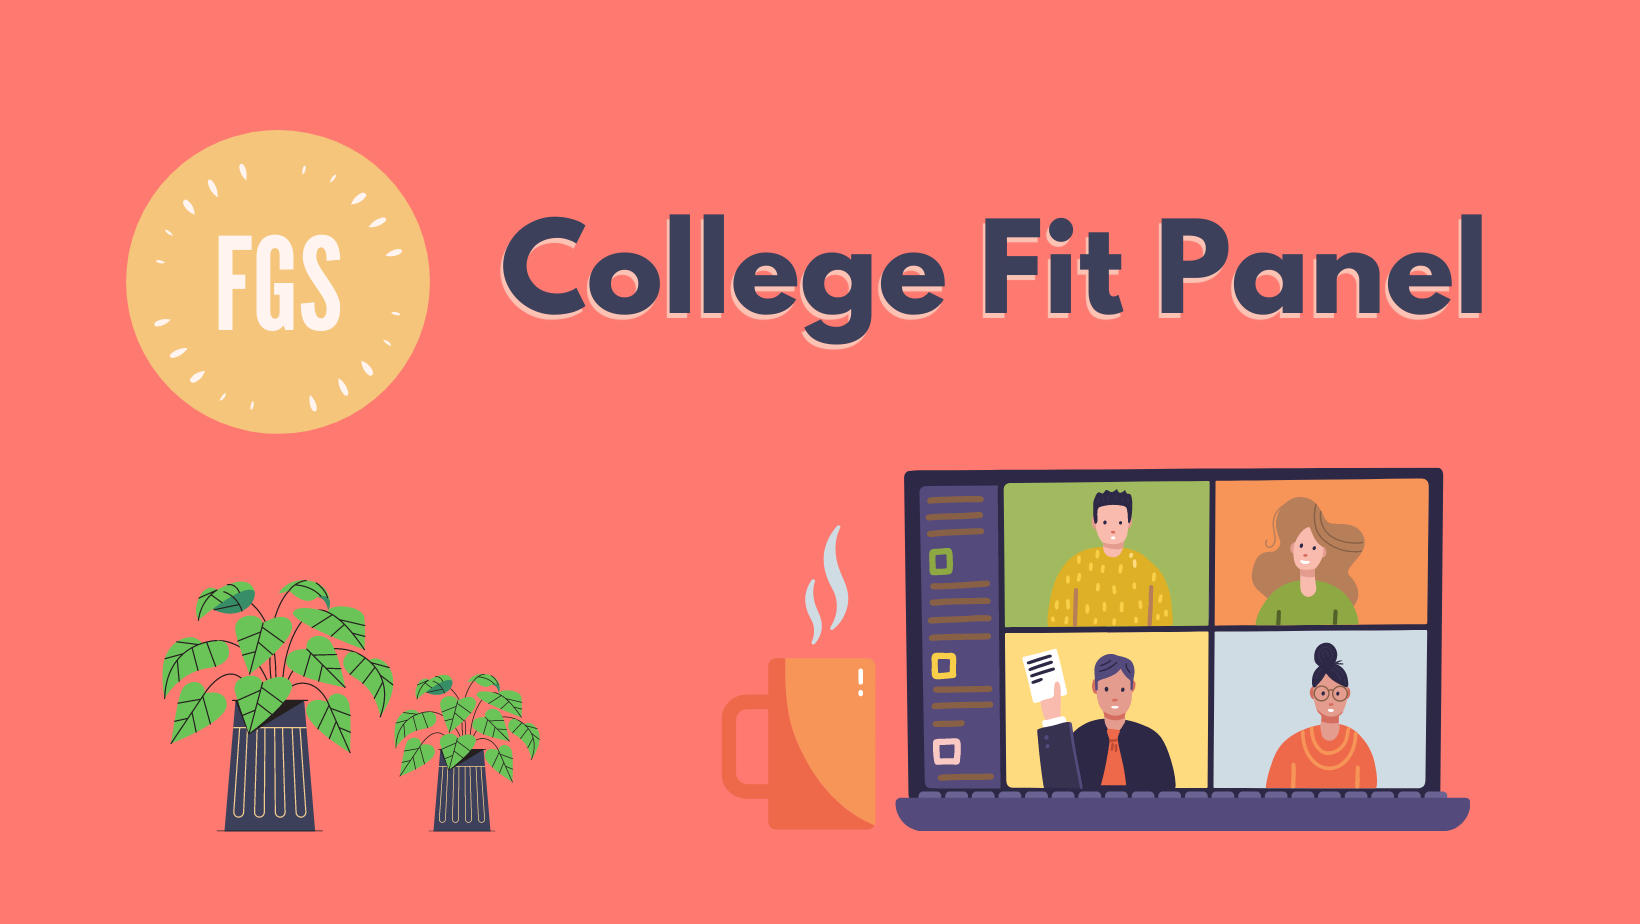 College fit panel